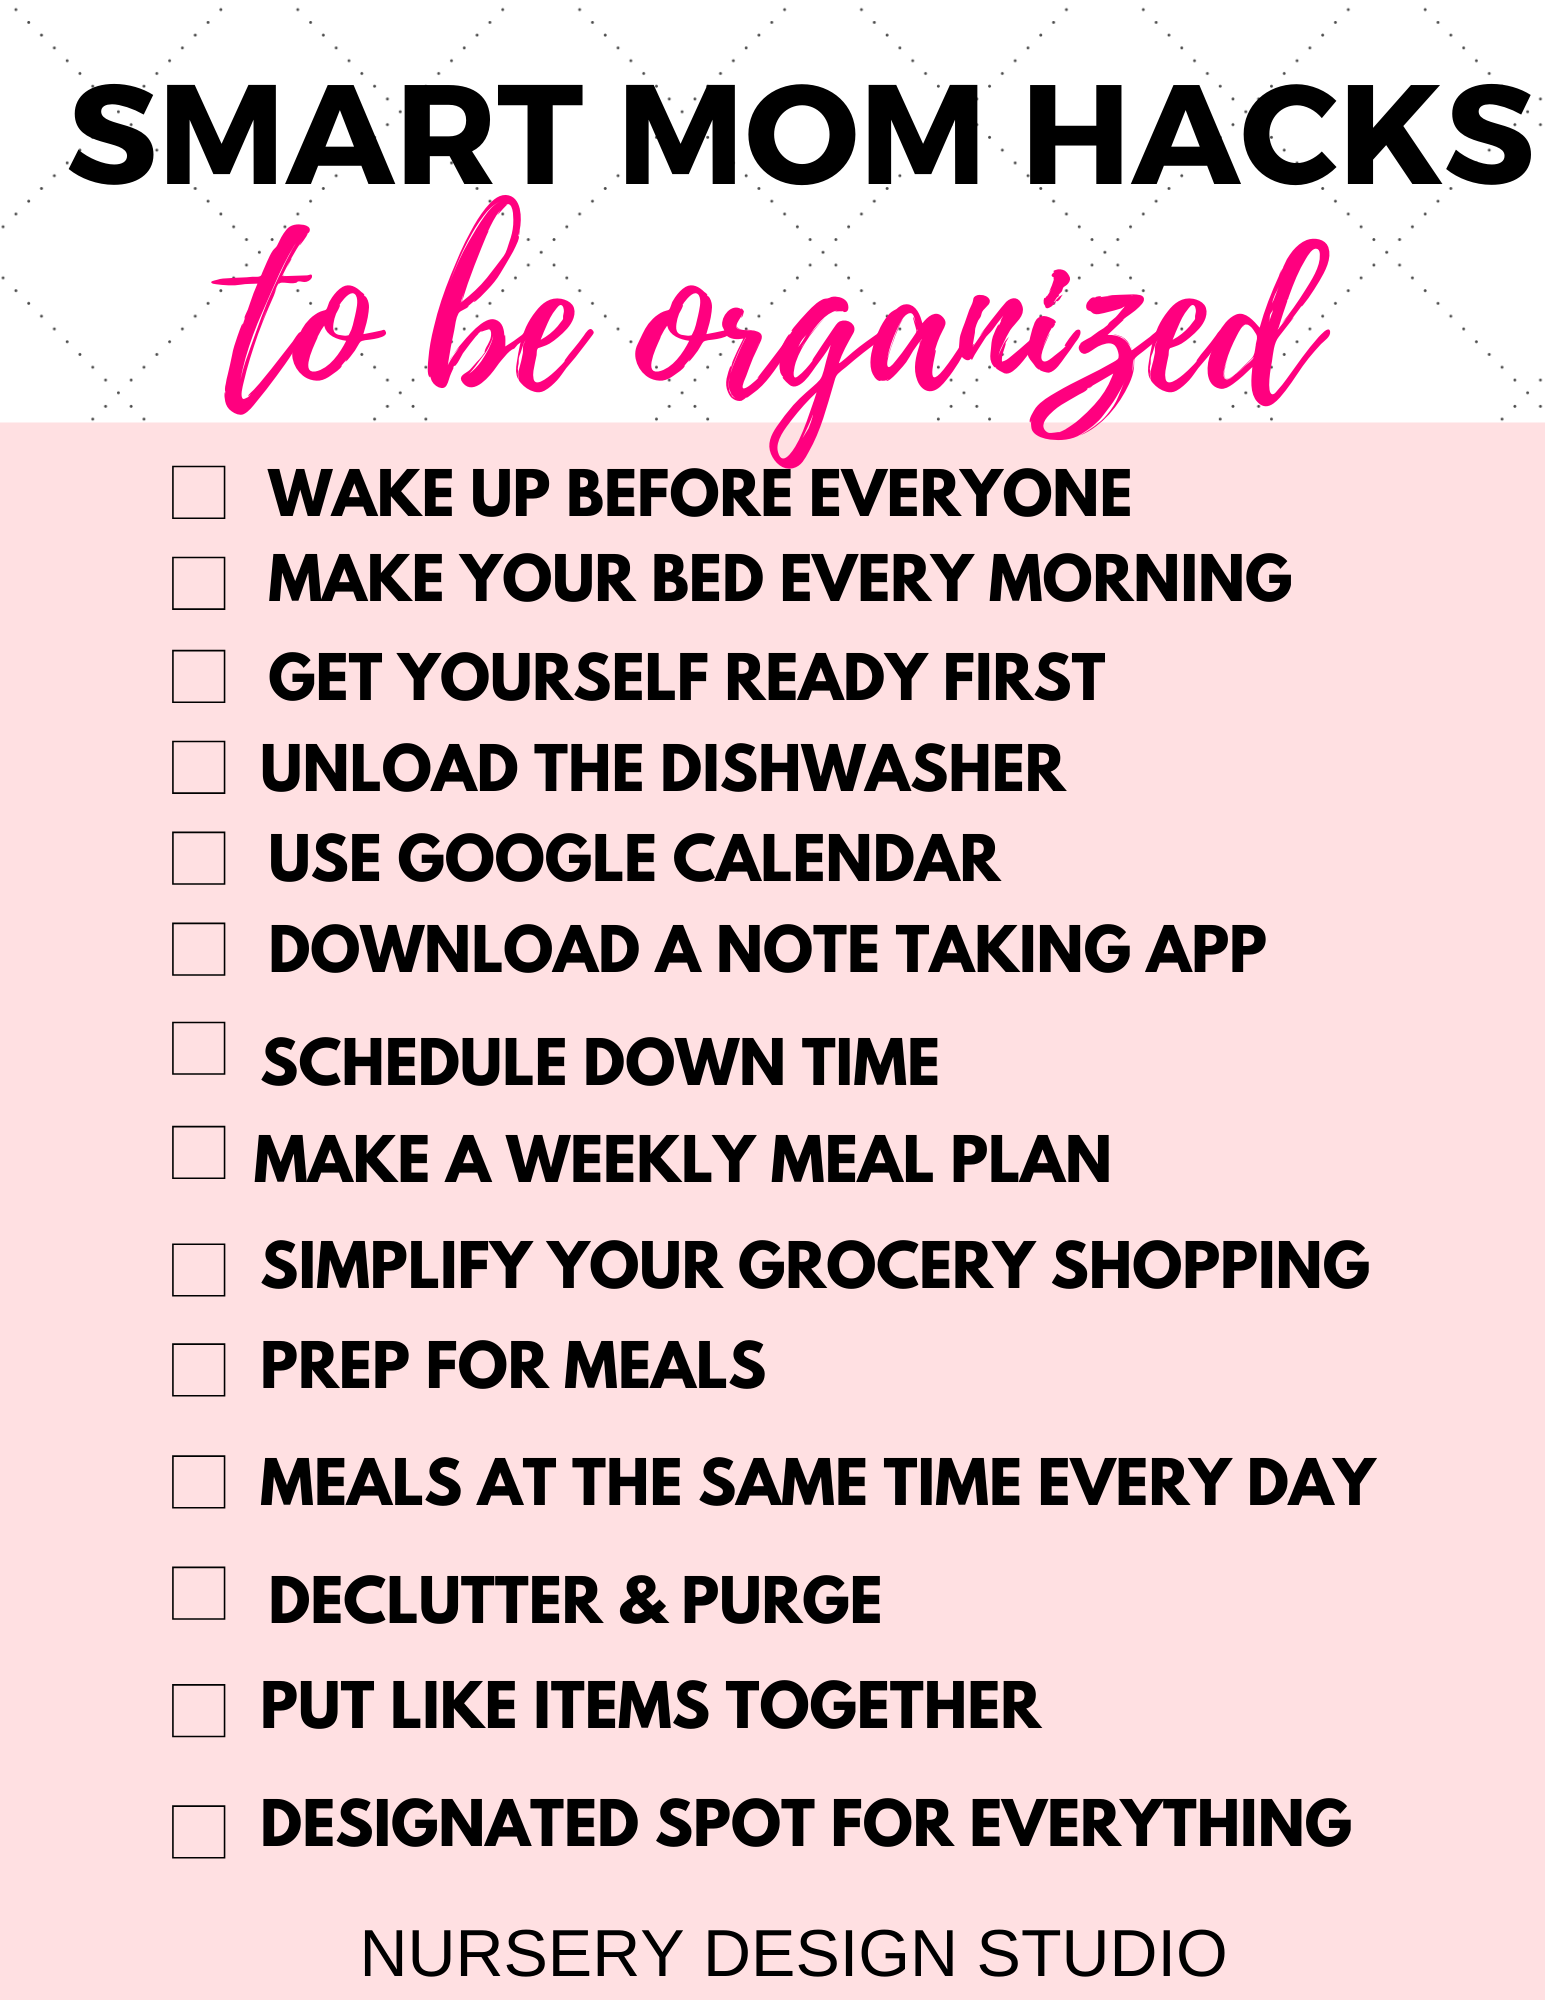 SMART MOM HACKS TO BE ORGANIZED